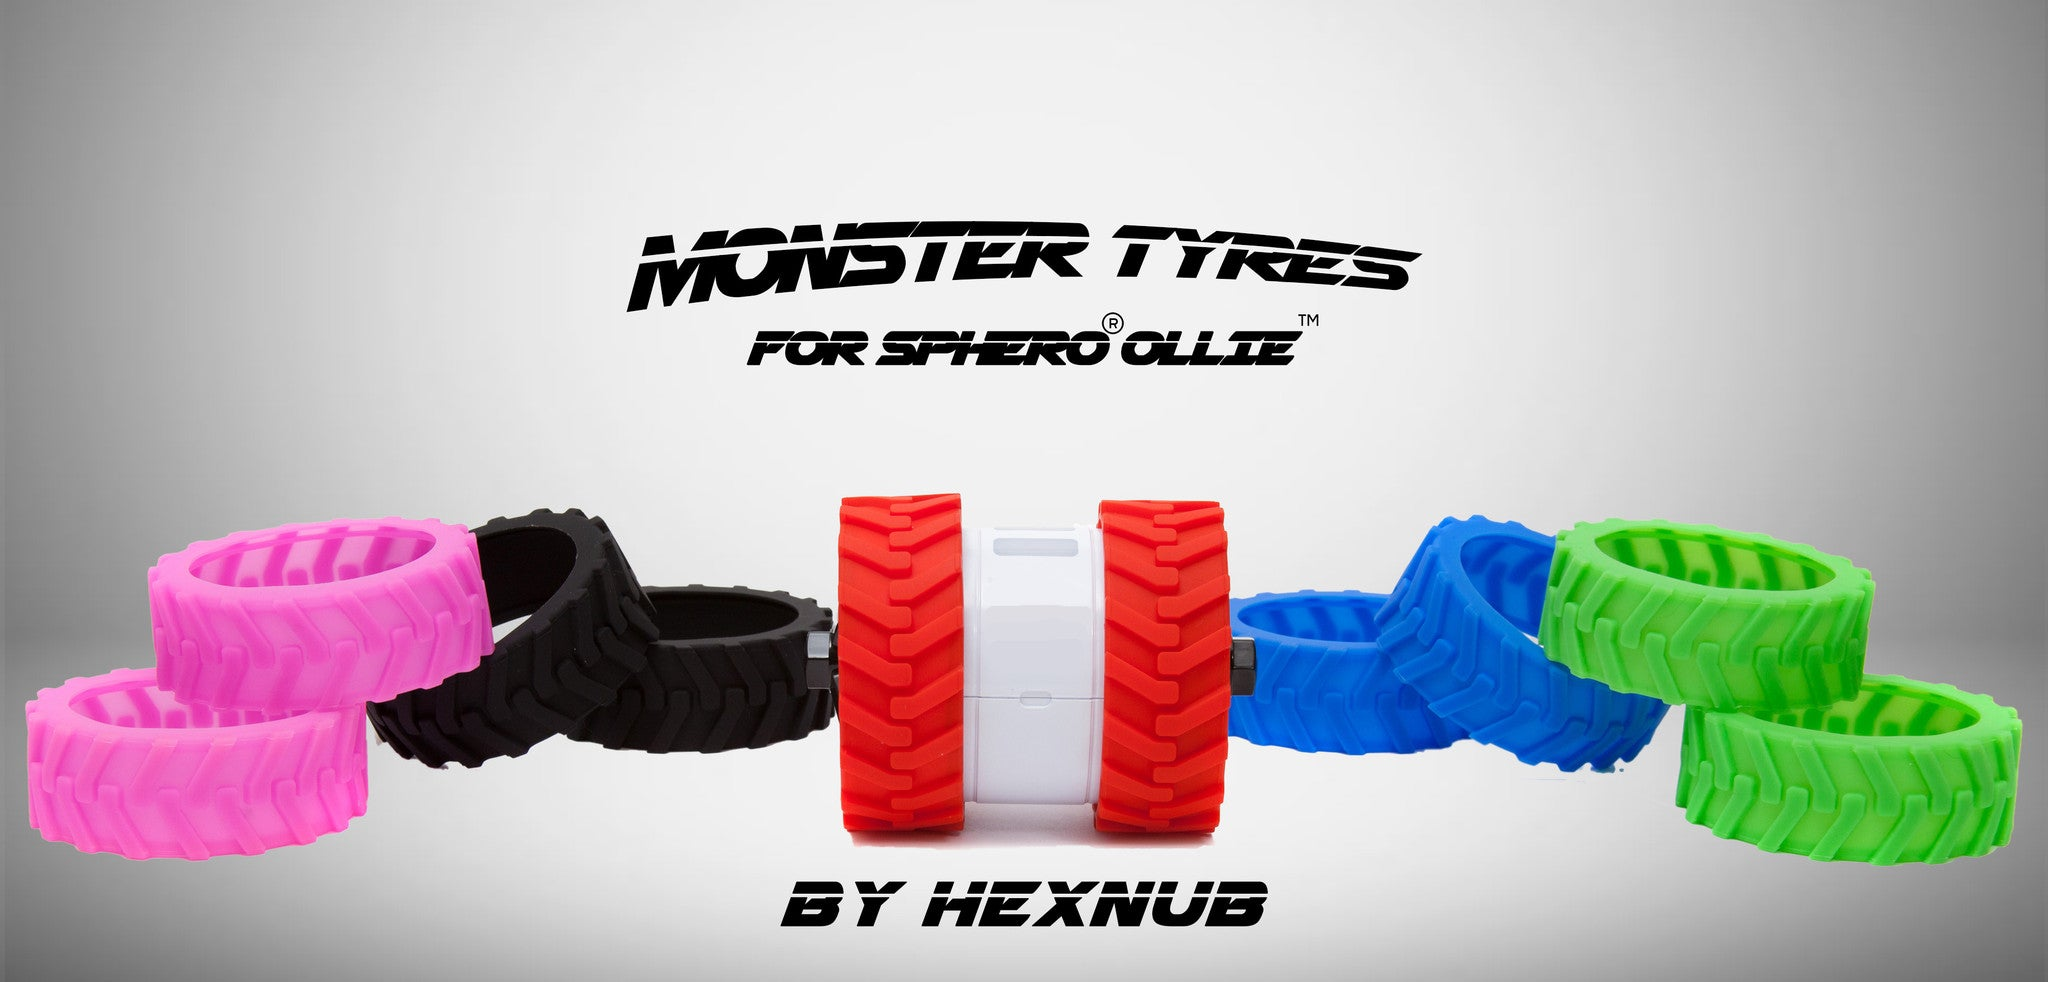 Sphero Ollie Monster Tyres 0638267778969